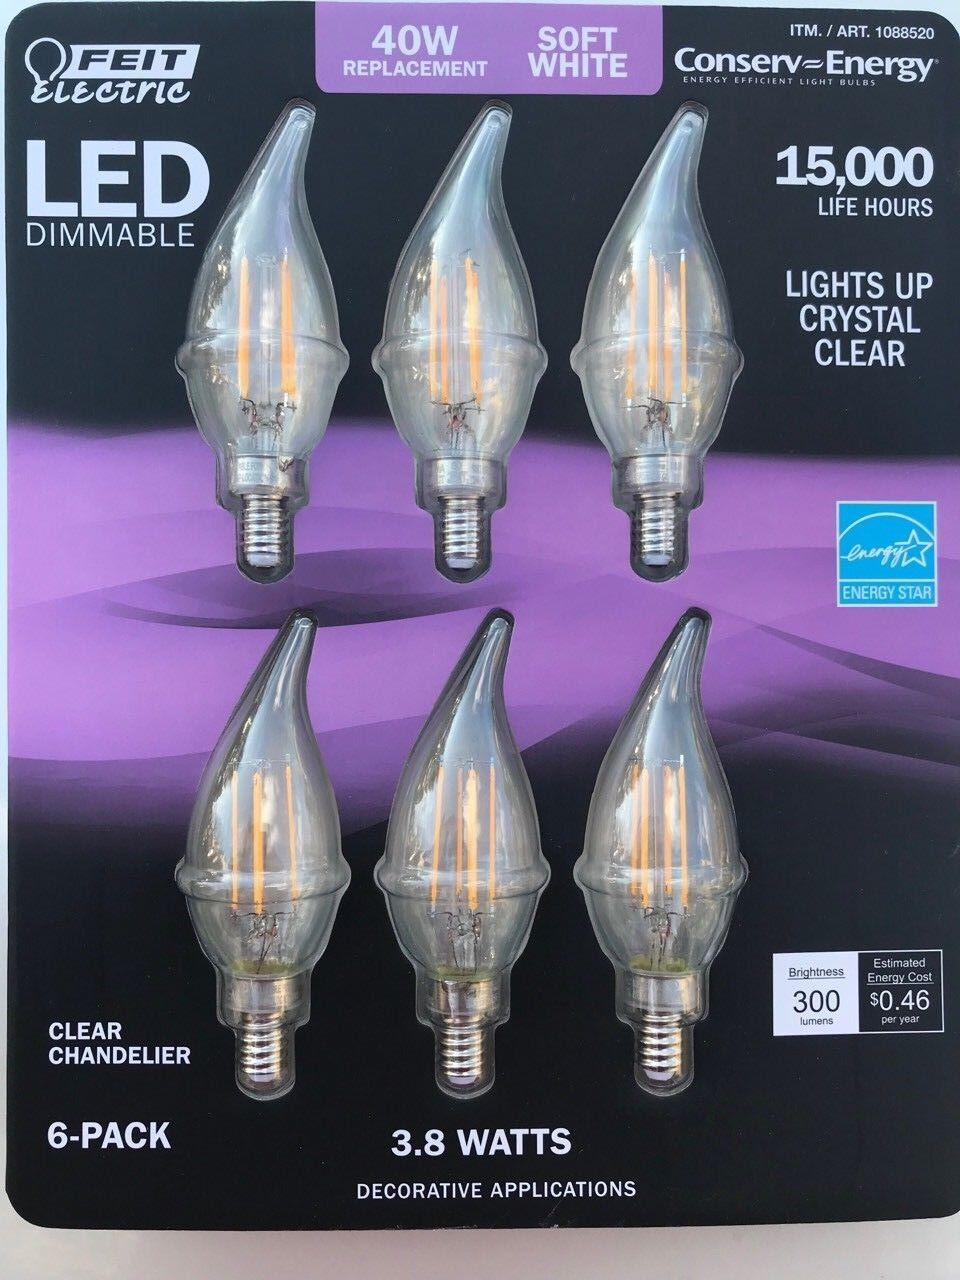 New 6 x Feit LED Chandelier Bulb Soft White Dimmable 40W Replacement w Just 3.8W